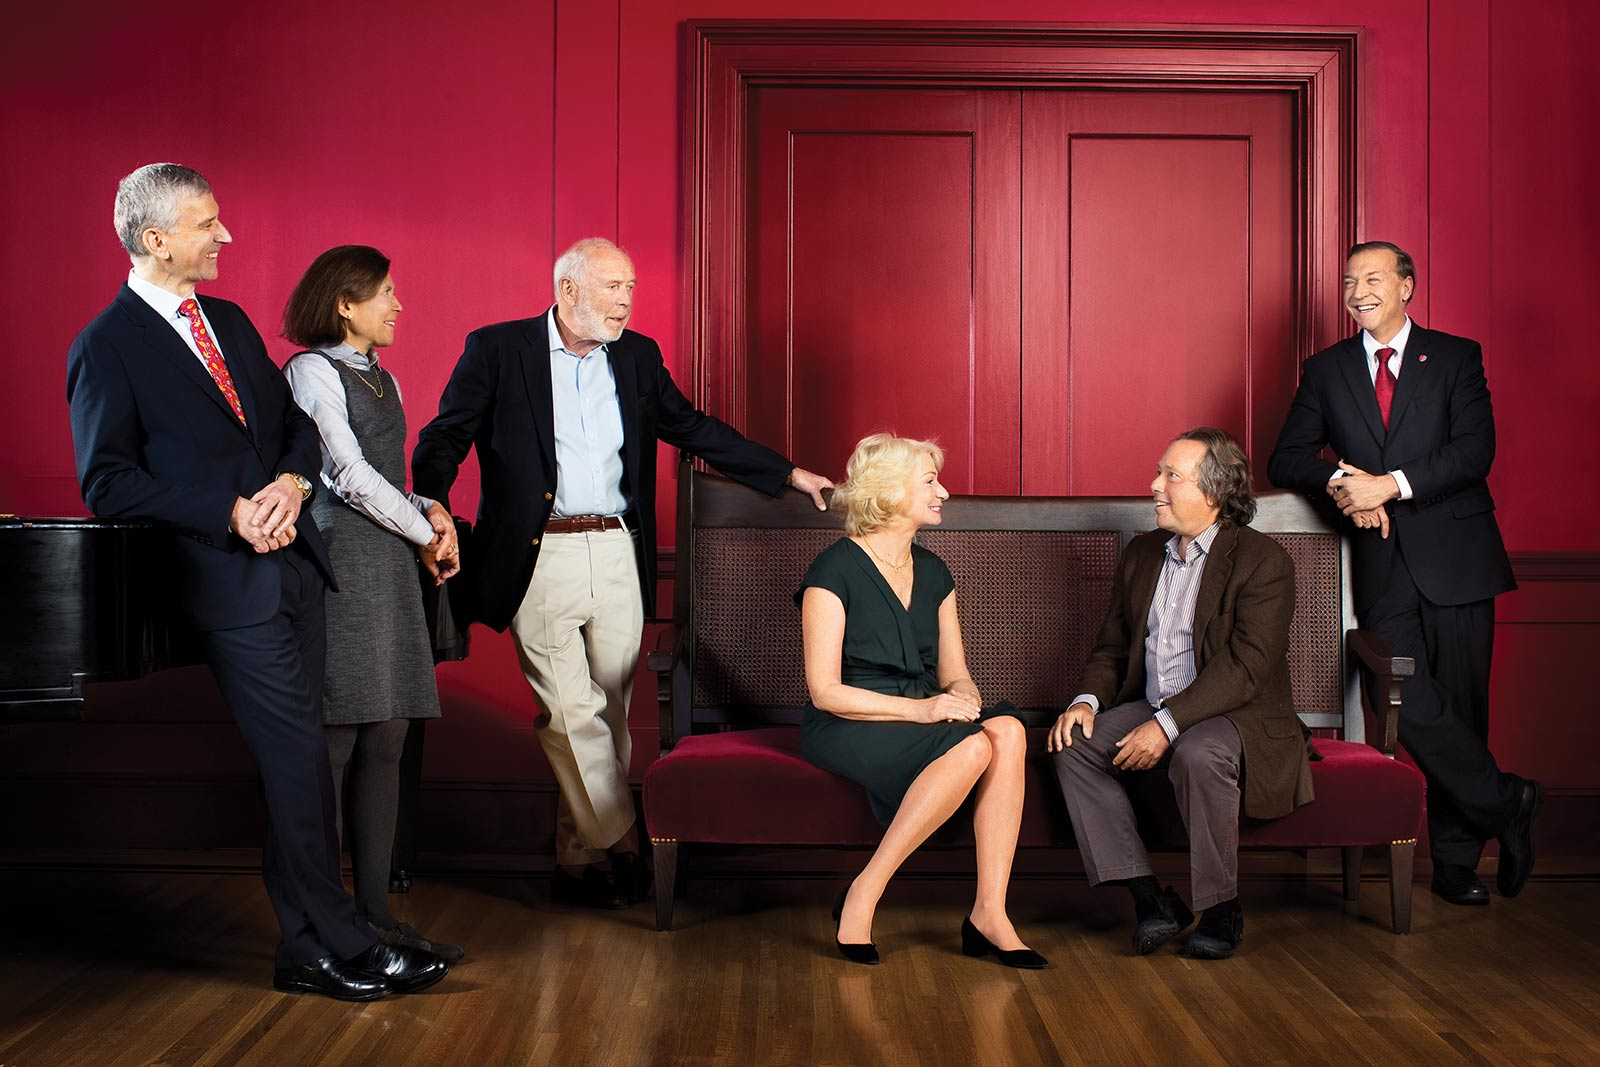 Left to right: Cary F. Staller,  Marisela H. Staller,  James H. Simons,  Marilyn H. Simons,  Richard L. Gelfond and  President Samuel L. Stanley Jr.  Not present: Glenn R. Dubin, Eva Andersson-Dubin and Peggy Bonapace Gelfond